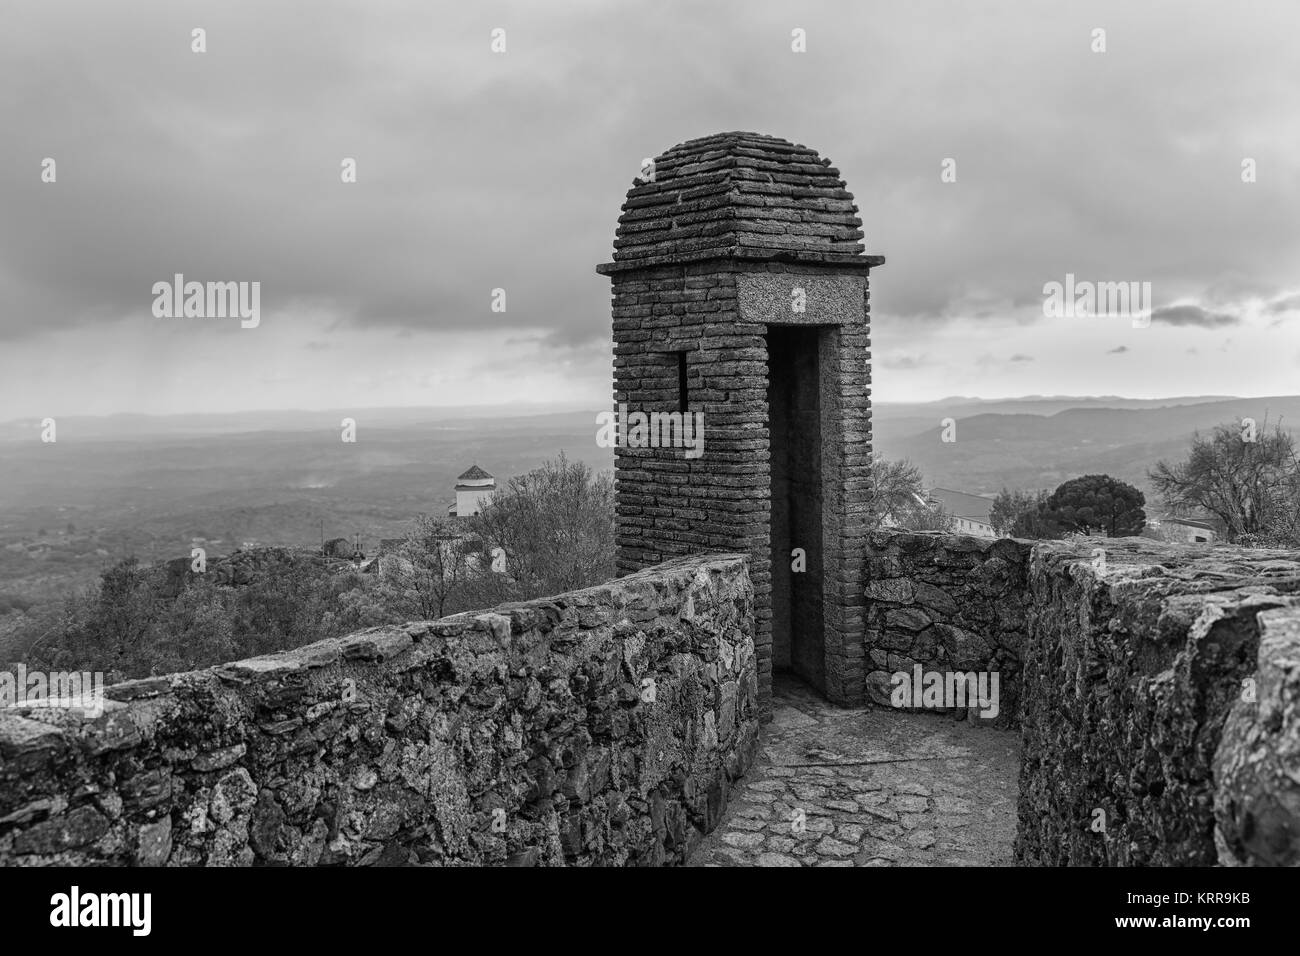 Photographed From The Old Military Fortress Marvão. Portugal